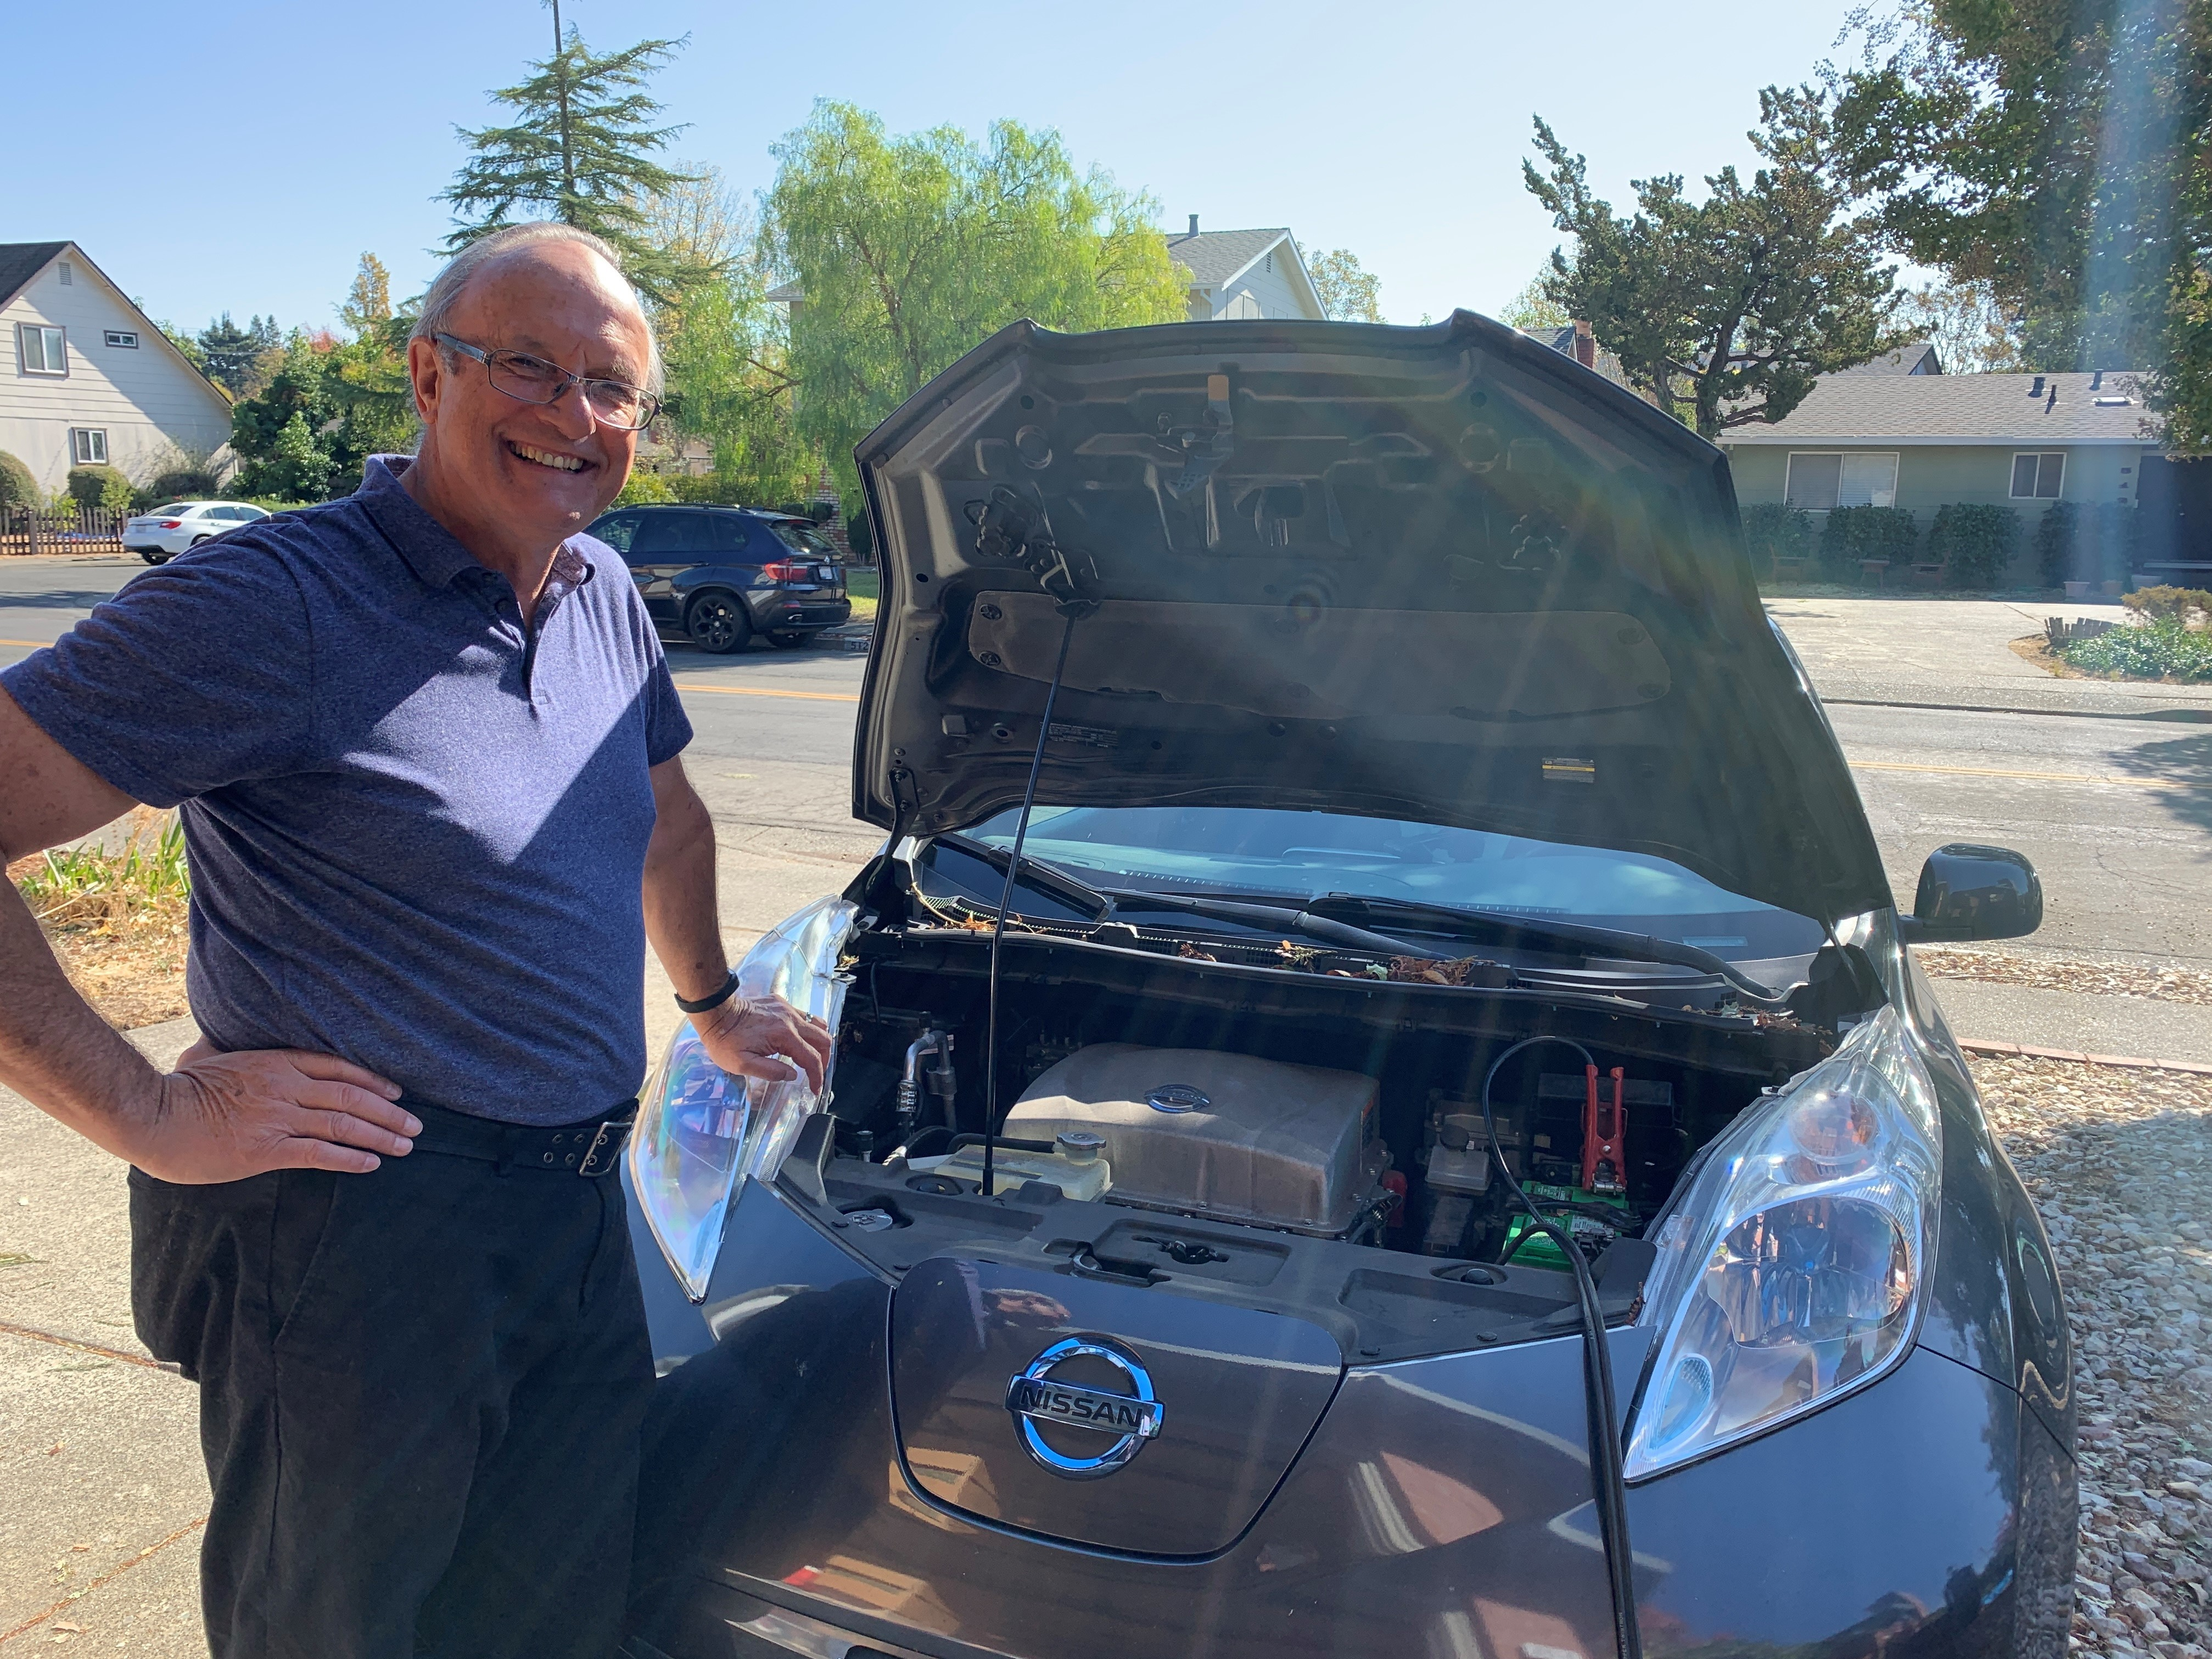 With Blackouts, California's Electric Car Owners Are Finding New Ways To Charge Up